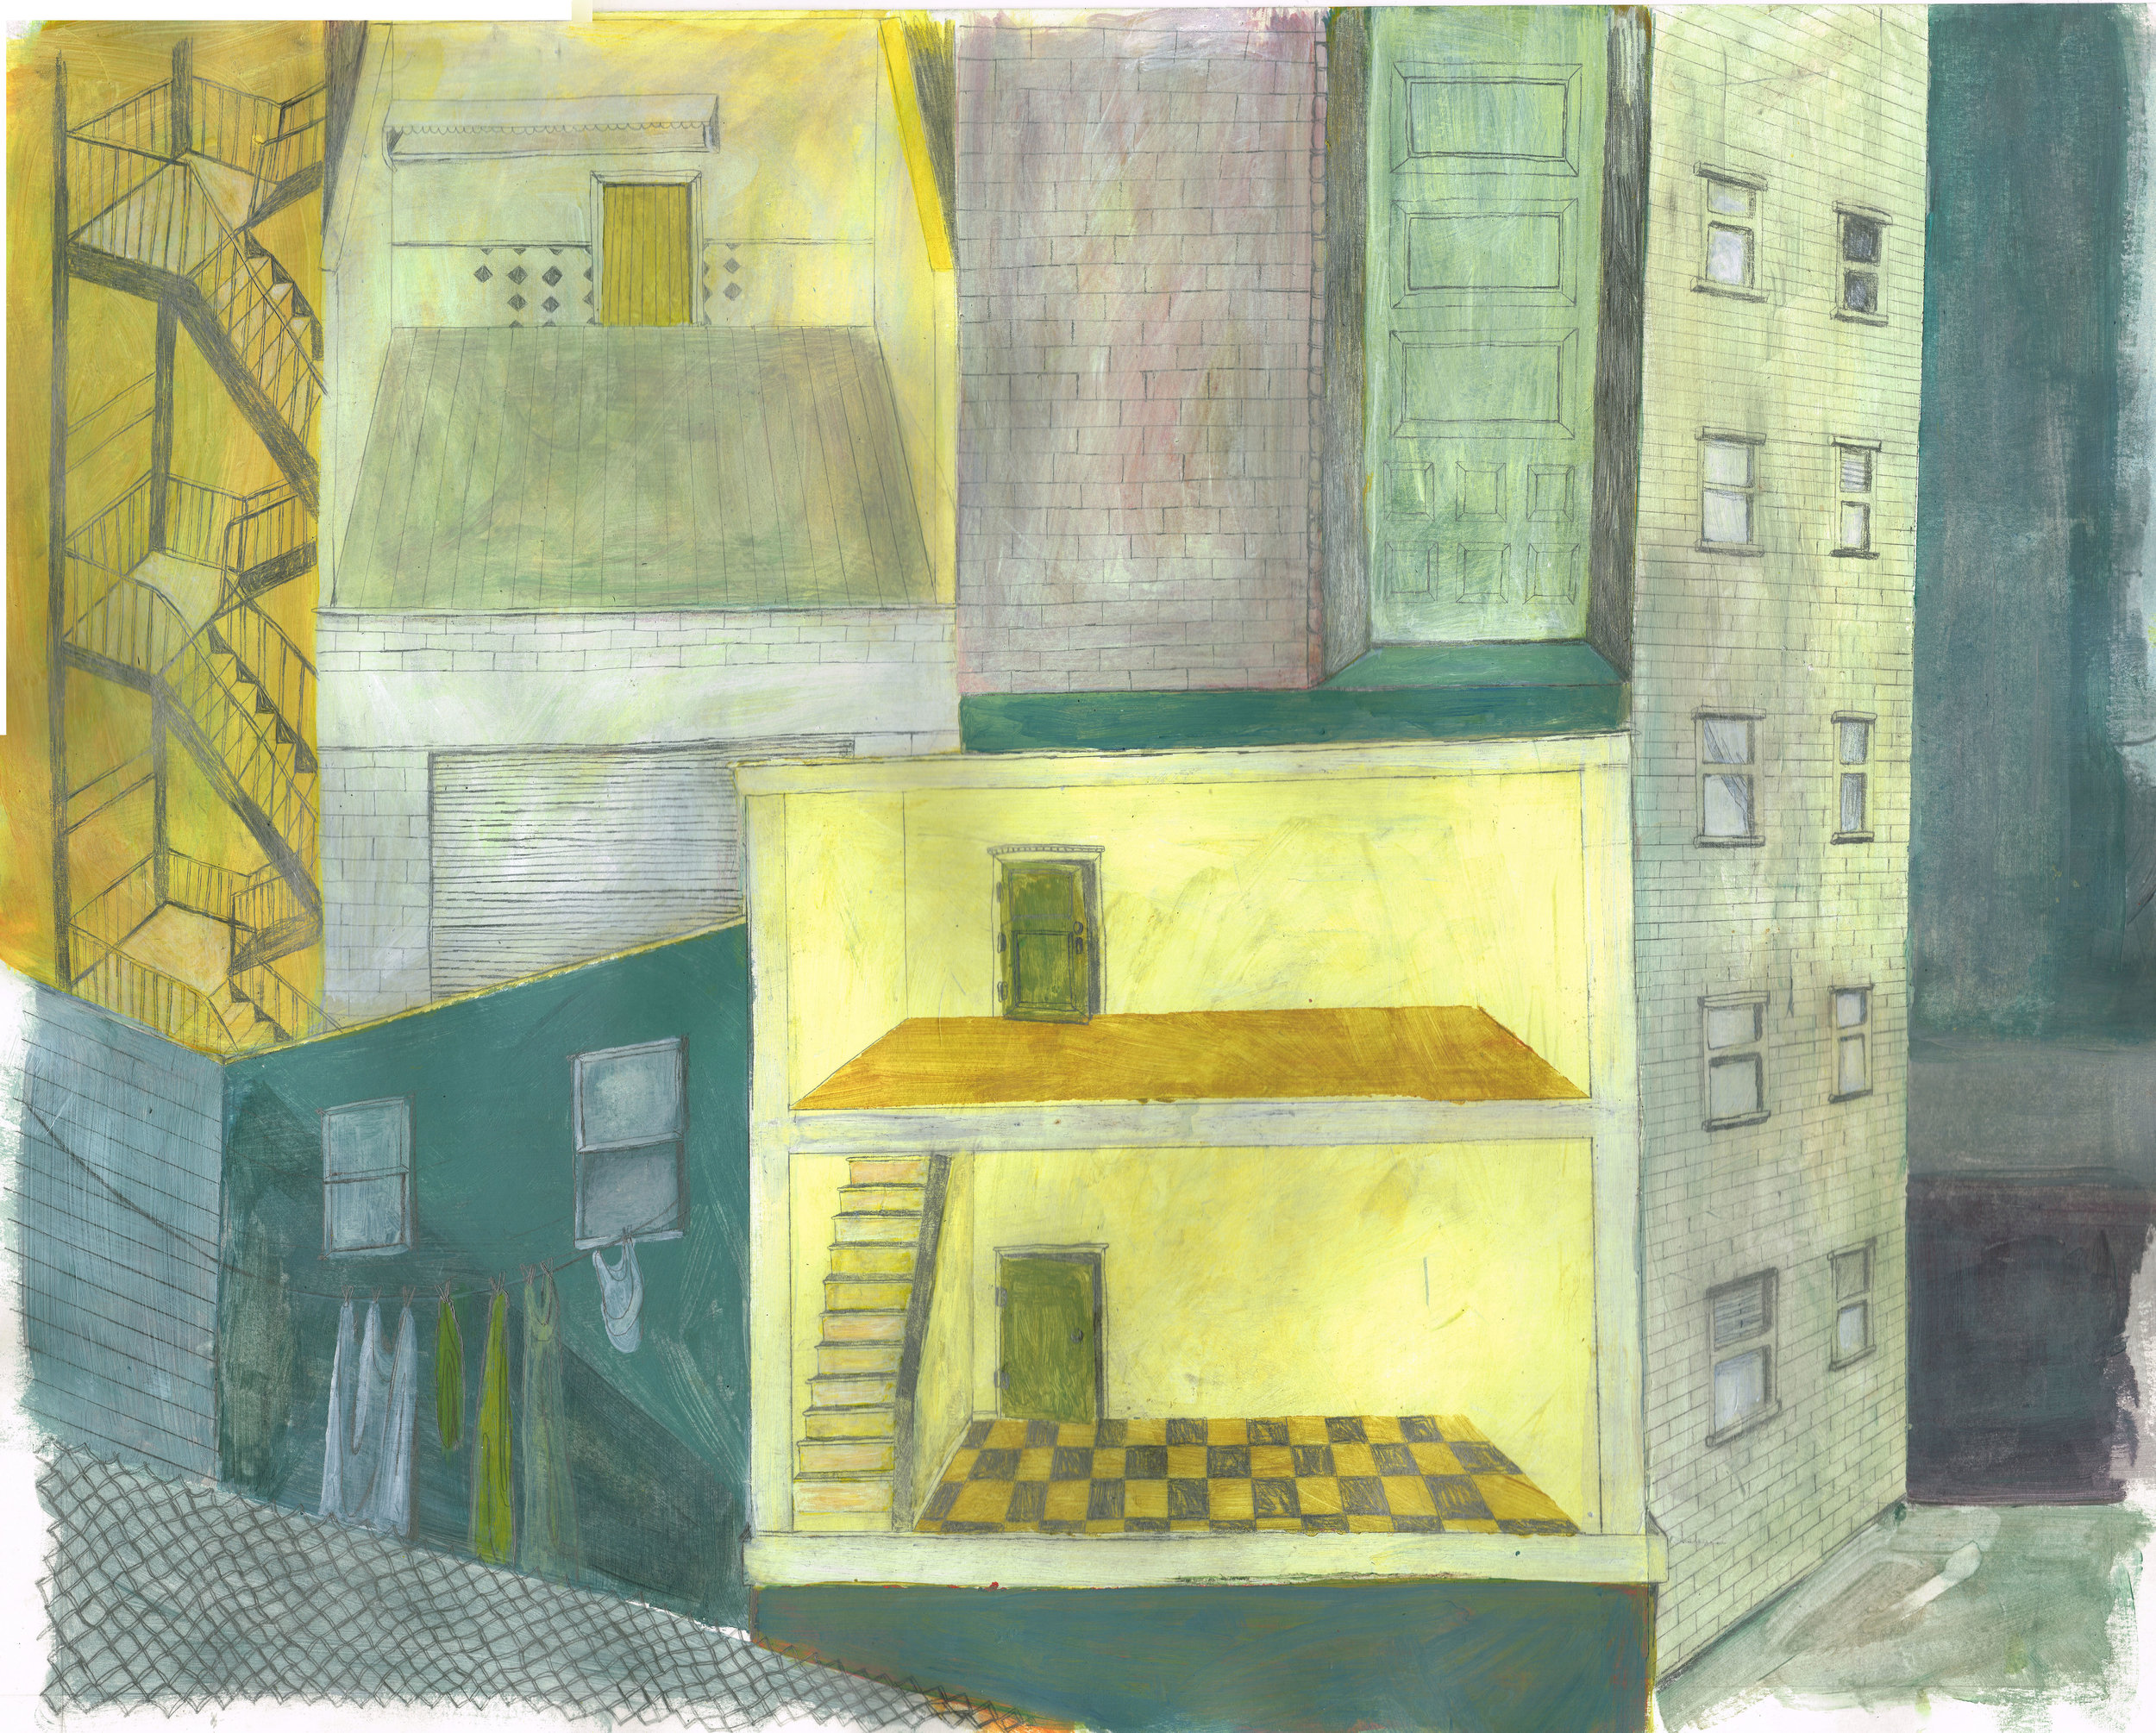 scans for journal forgotton painting empty buildings .jpg